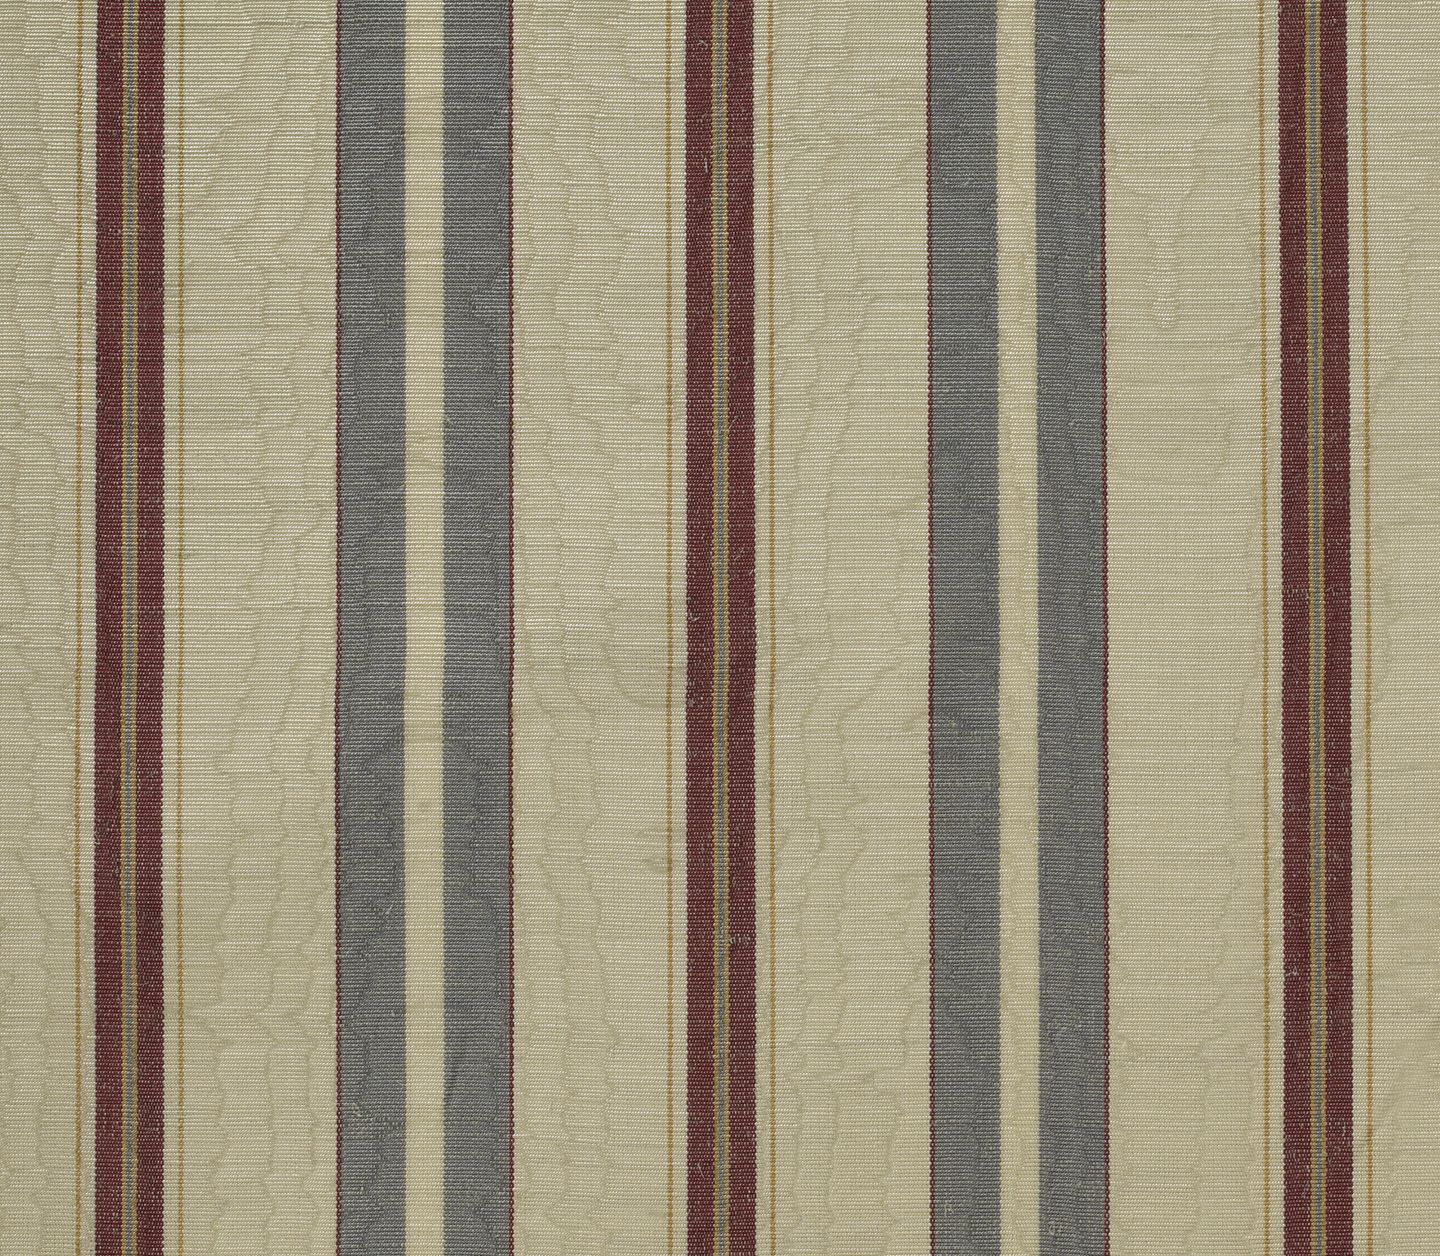 Patio Door Curtains Bed Bath Beyond Red And Gray Striped Curtains